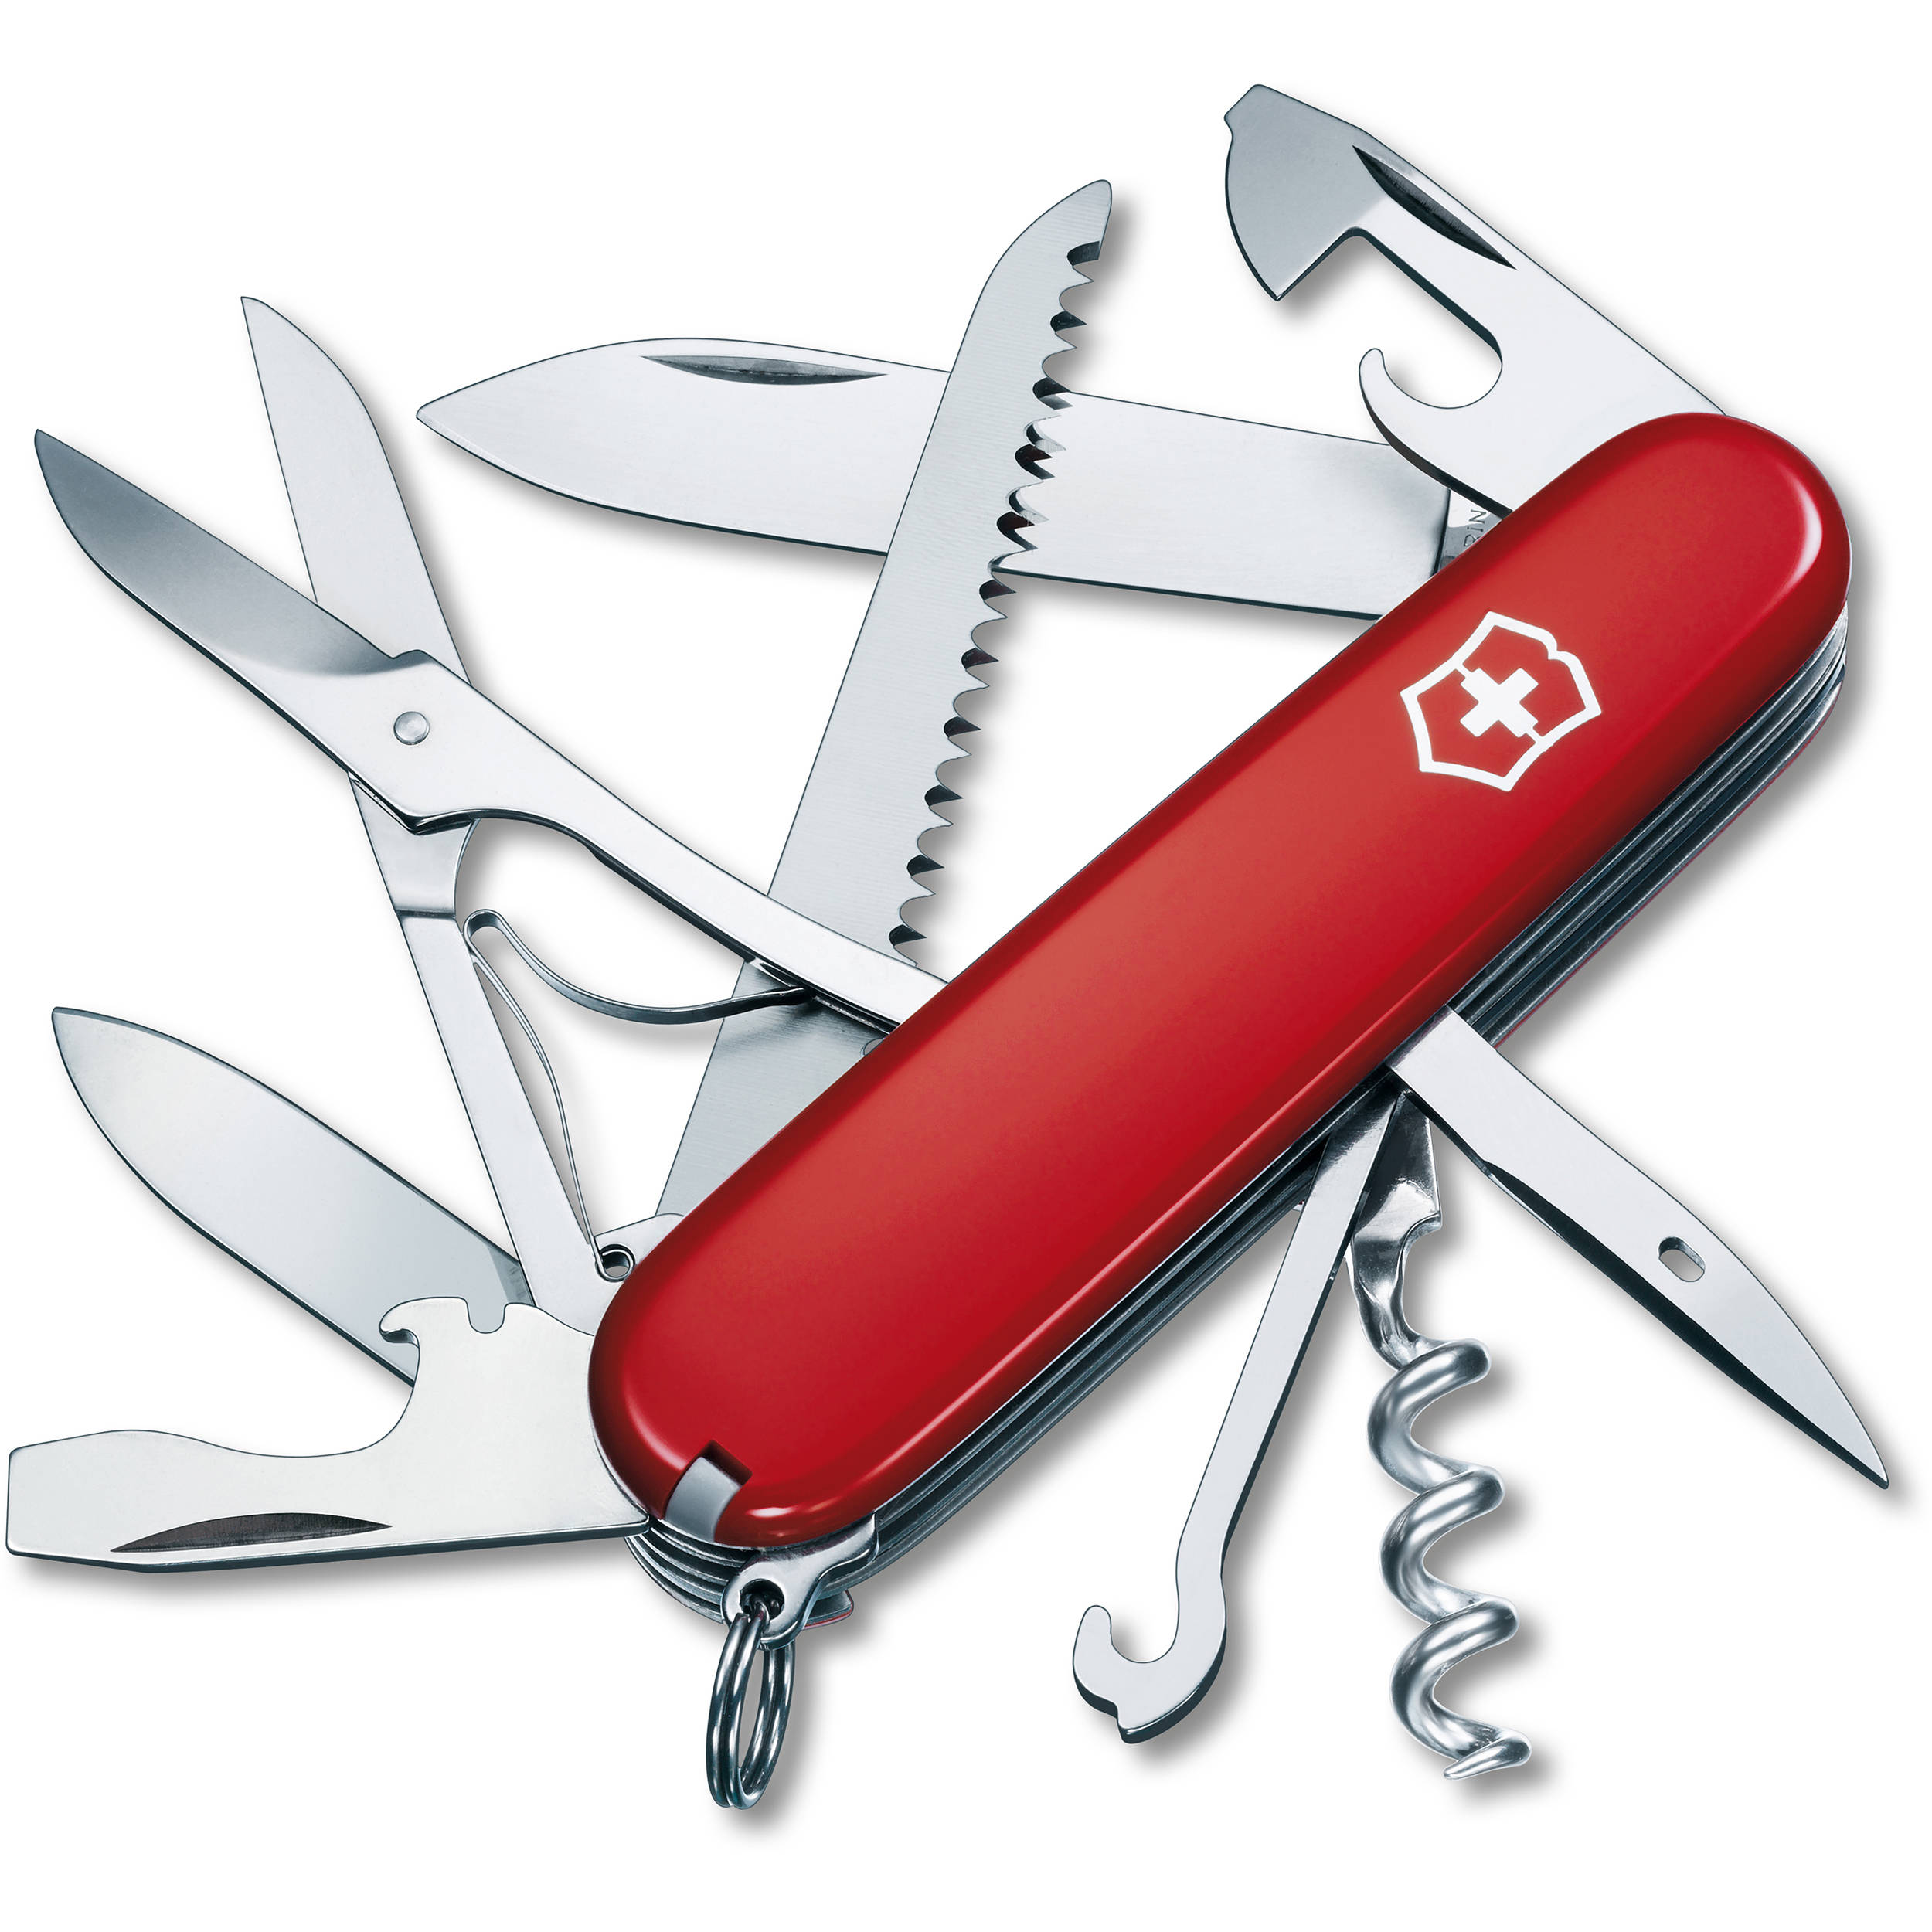 Victorinox Huntsman Pocket Knife Red 53201 B Amp H Photo Video